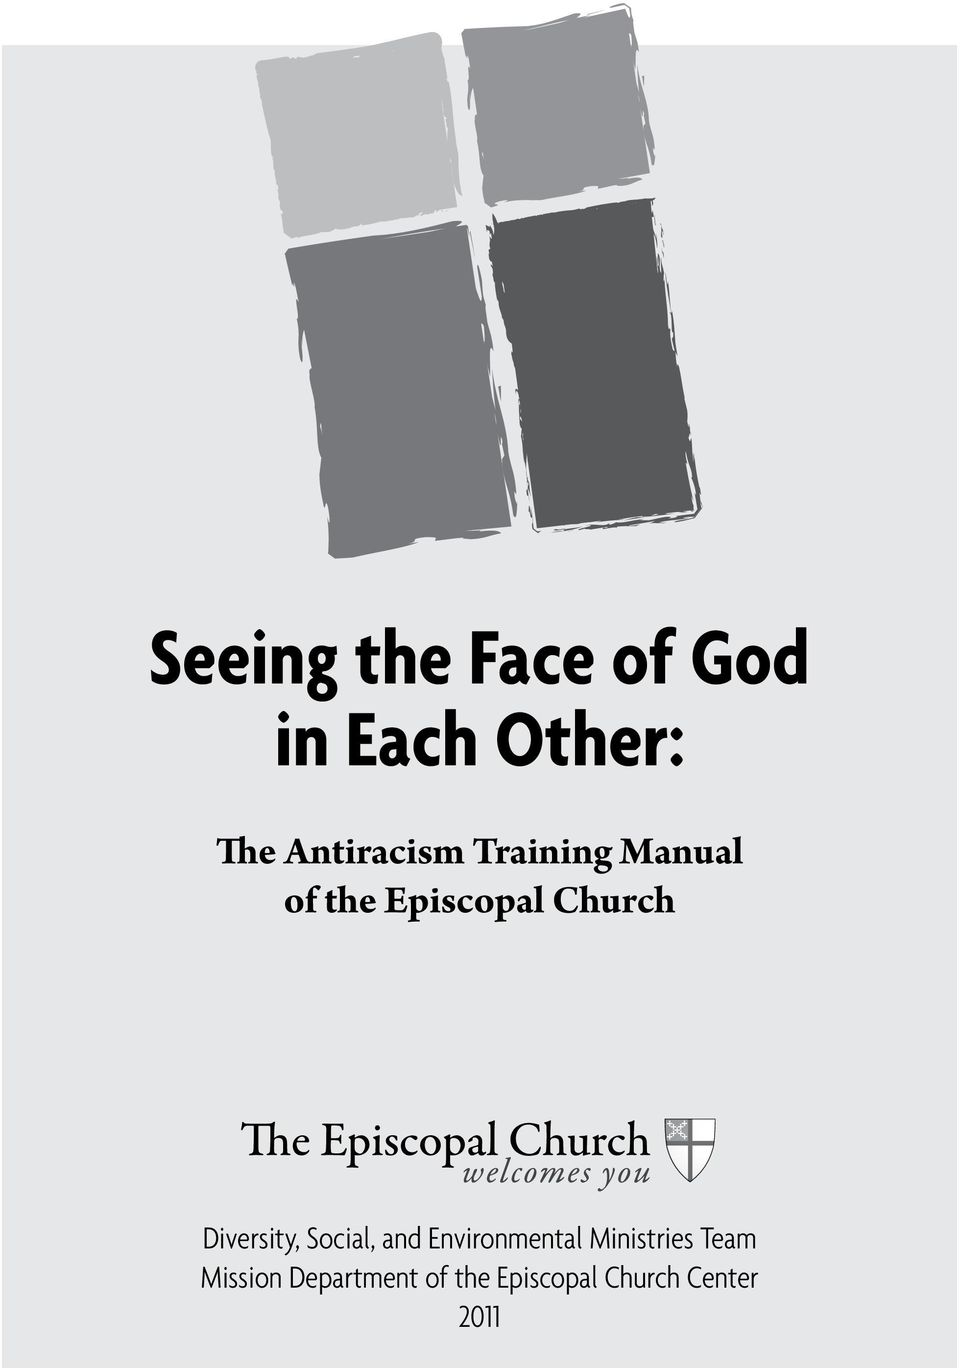 Church Diversity, Social, and Environmental